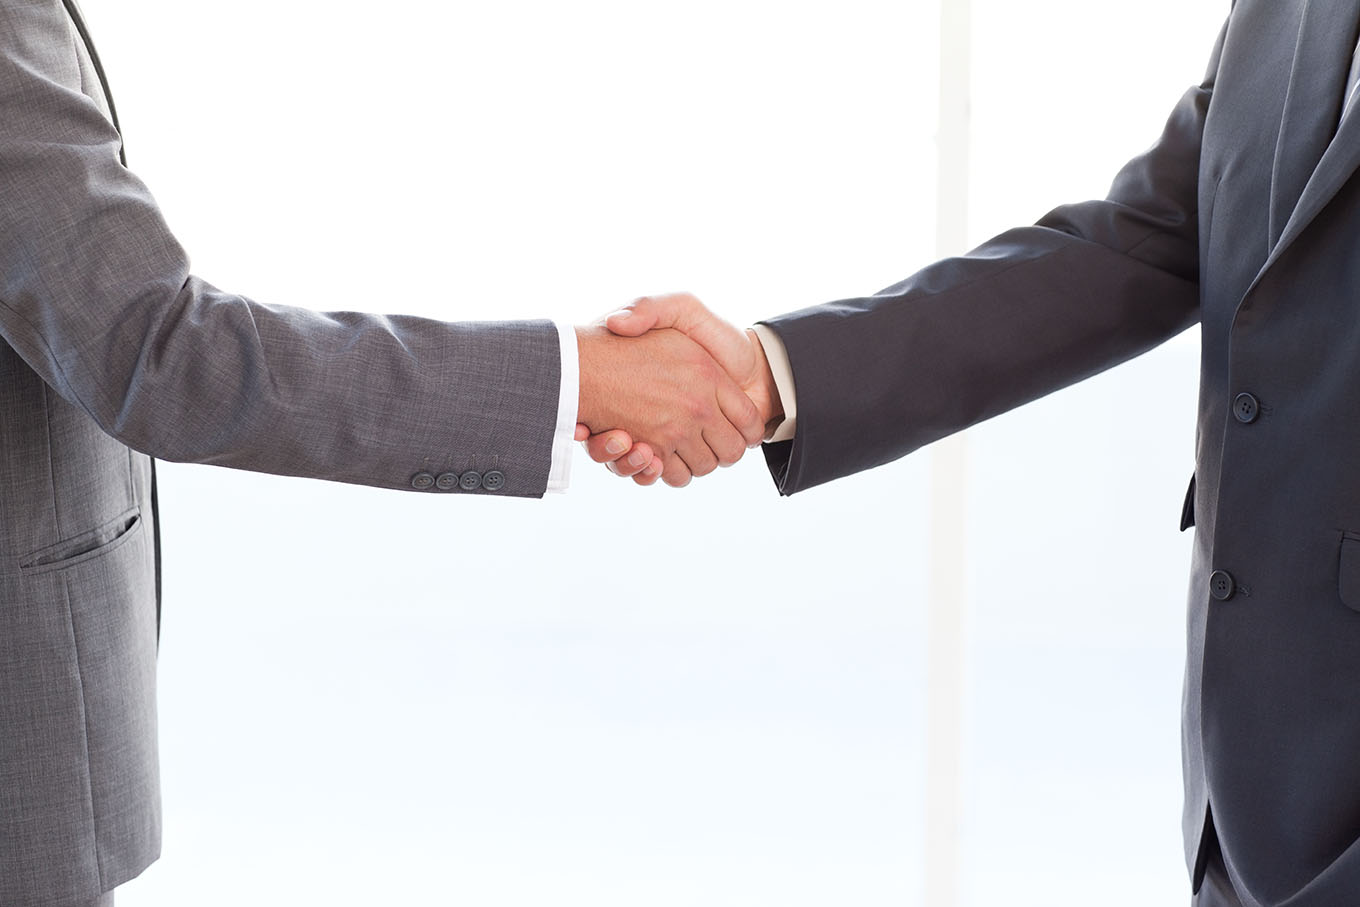 Two individuals shaking hands